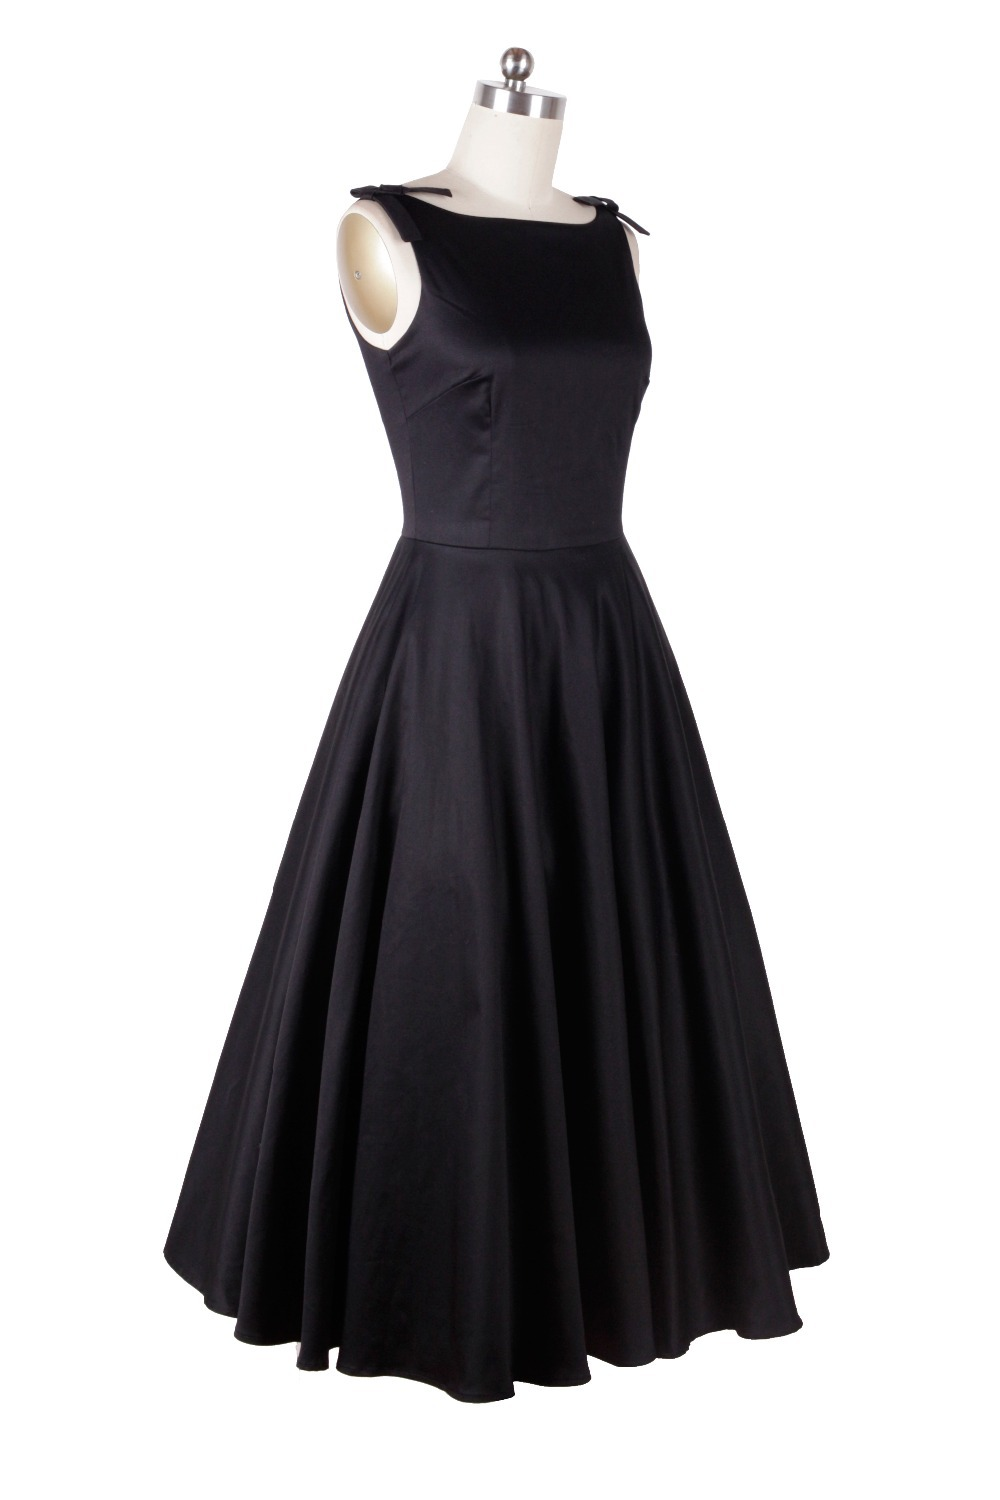 a90785bfe1b6c Detail Feedback Questions about Audrey Hepburn vintage style 50s 60s dresses  little black tea length elegant casual dress women clothing free shipping  on ...